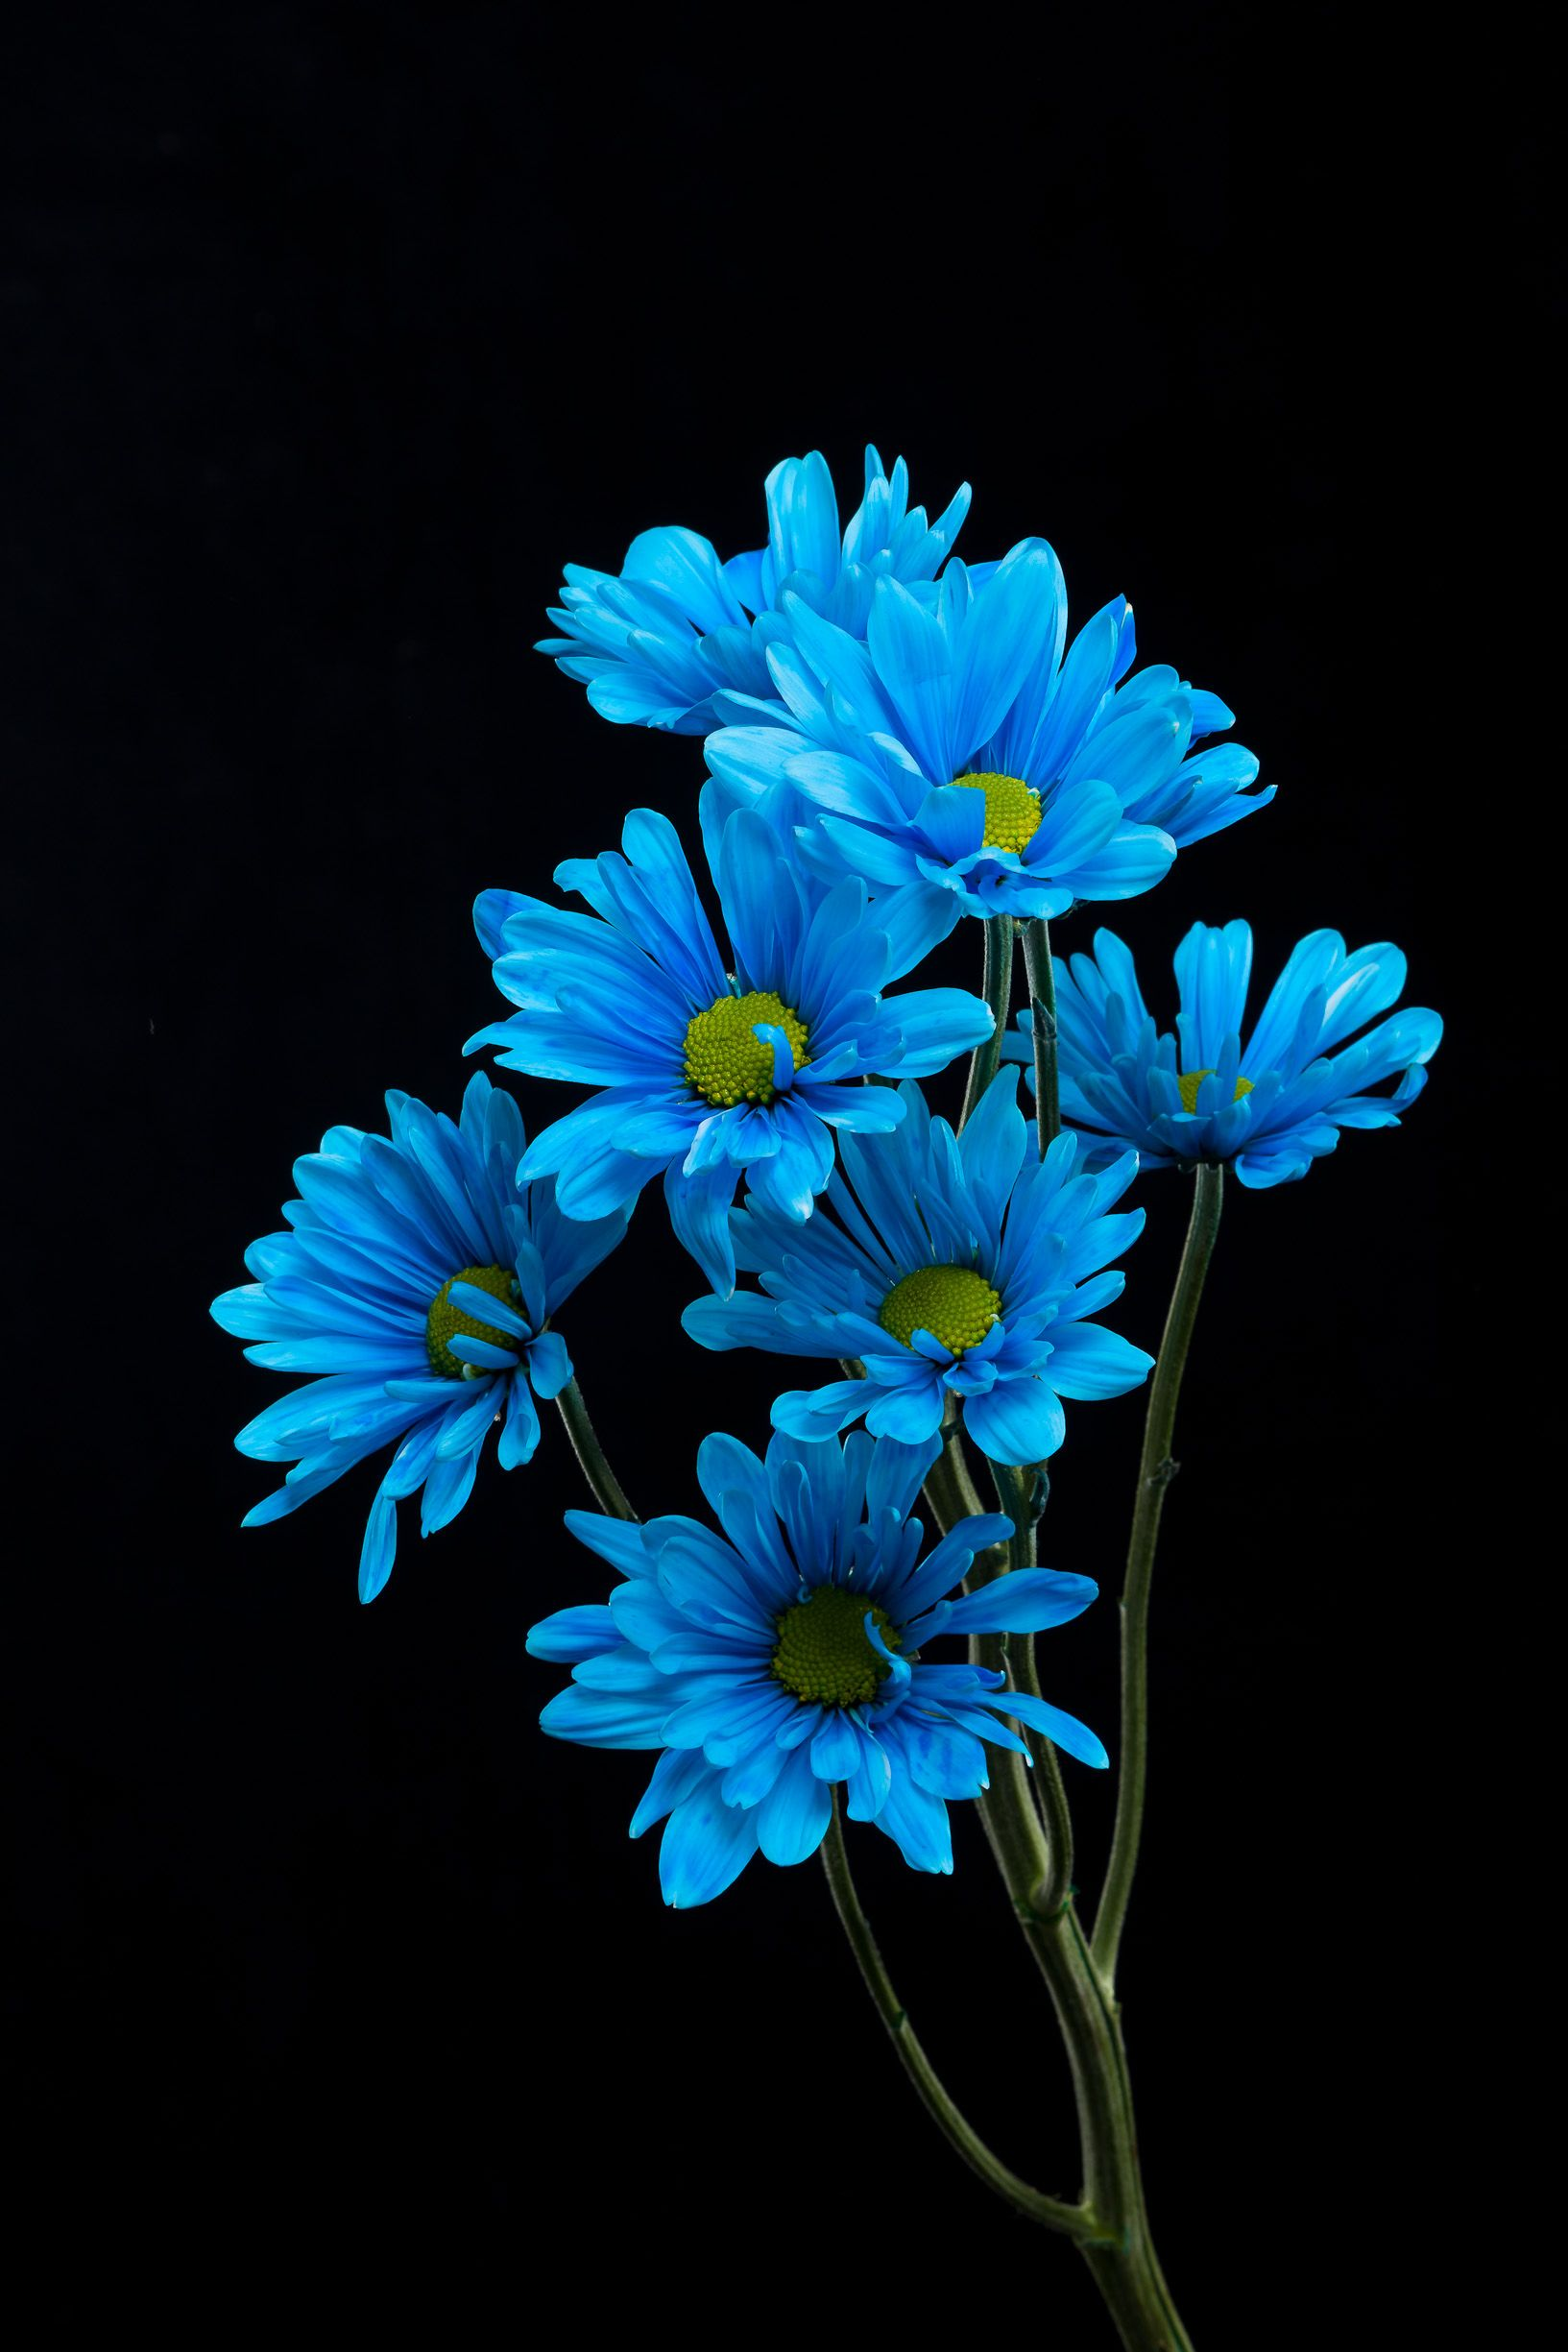 Flowers Blue And Wallpaper Image Flower Wallpaper Flower Background Wallpaper Spring Wallpaper